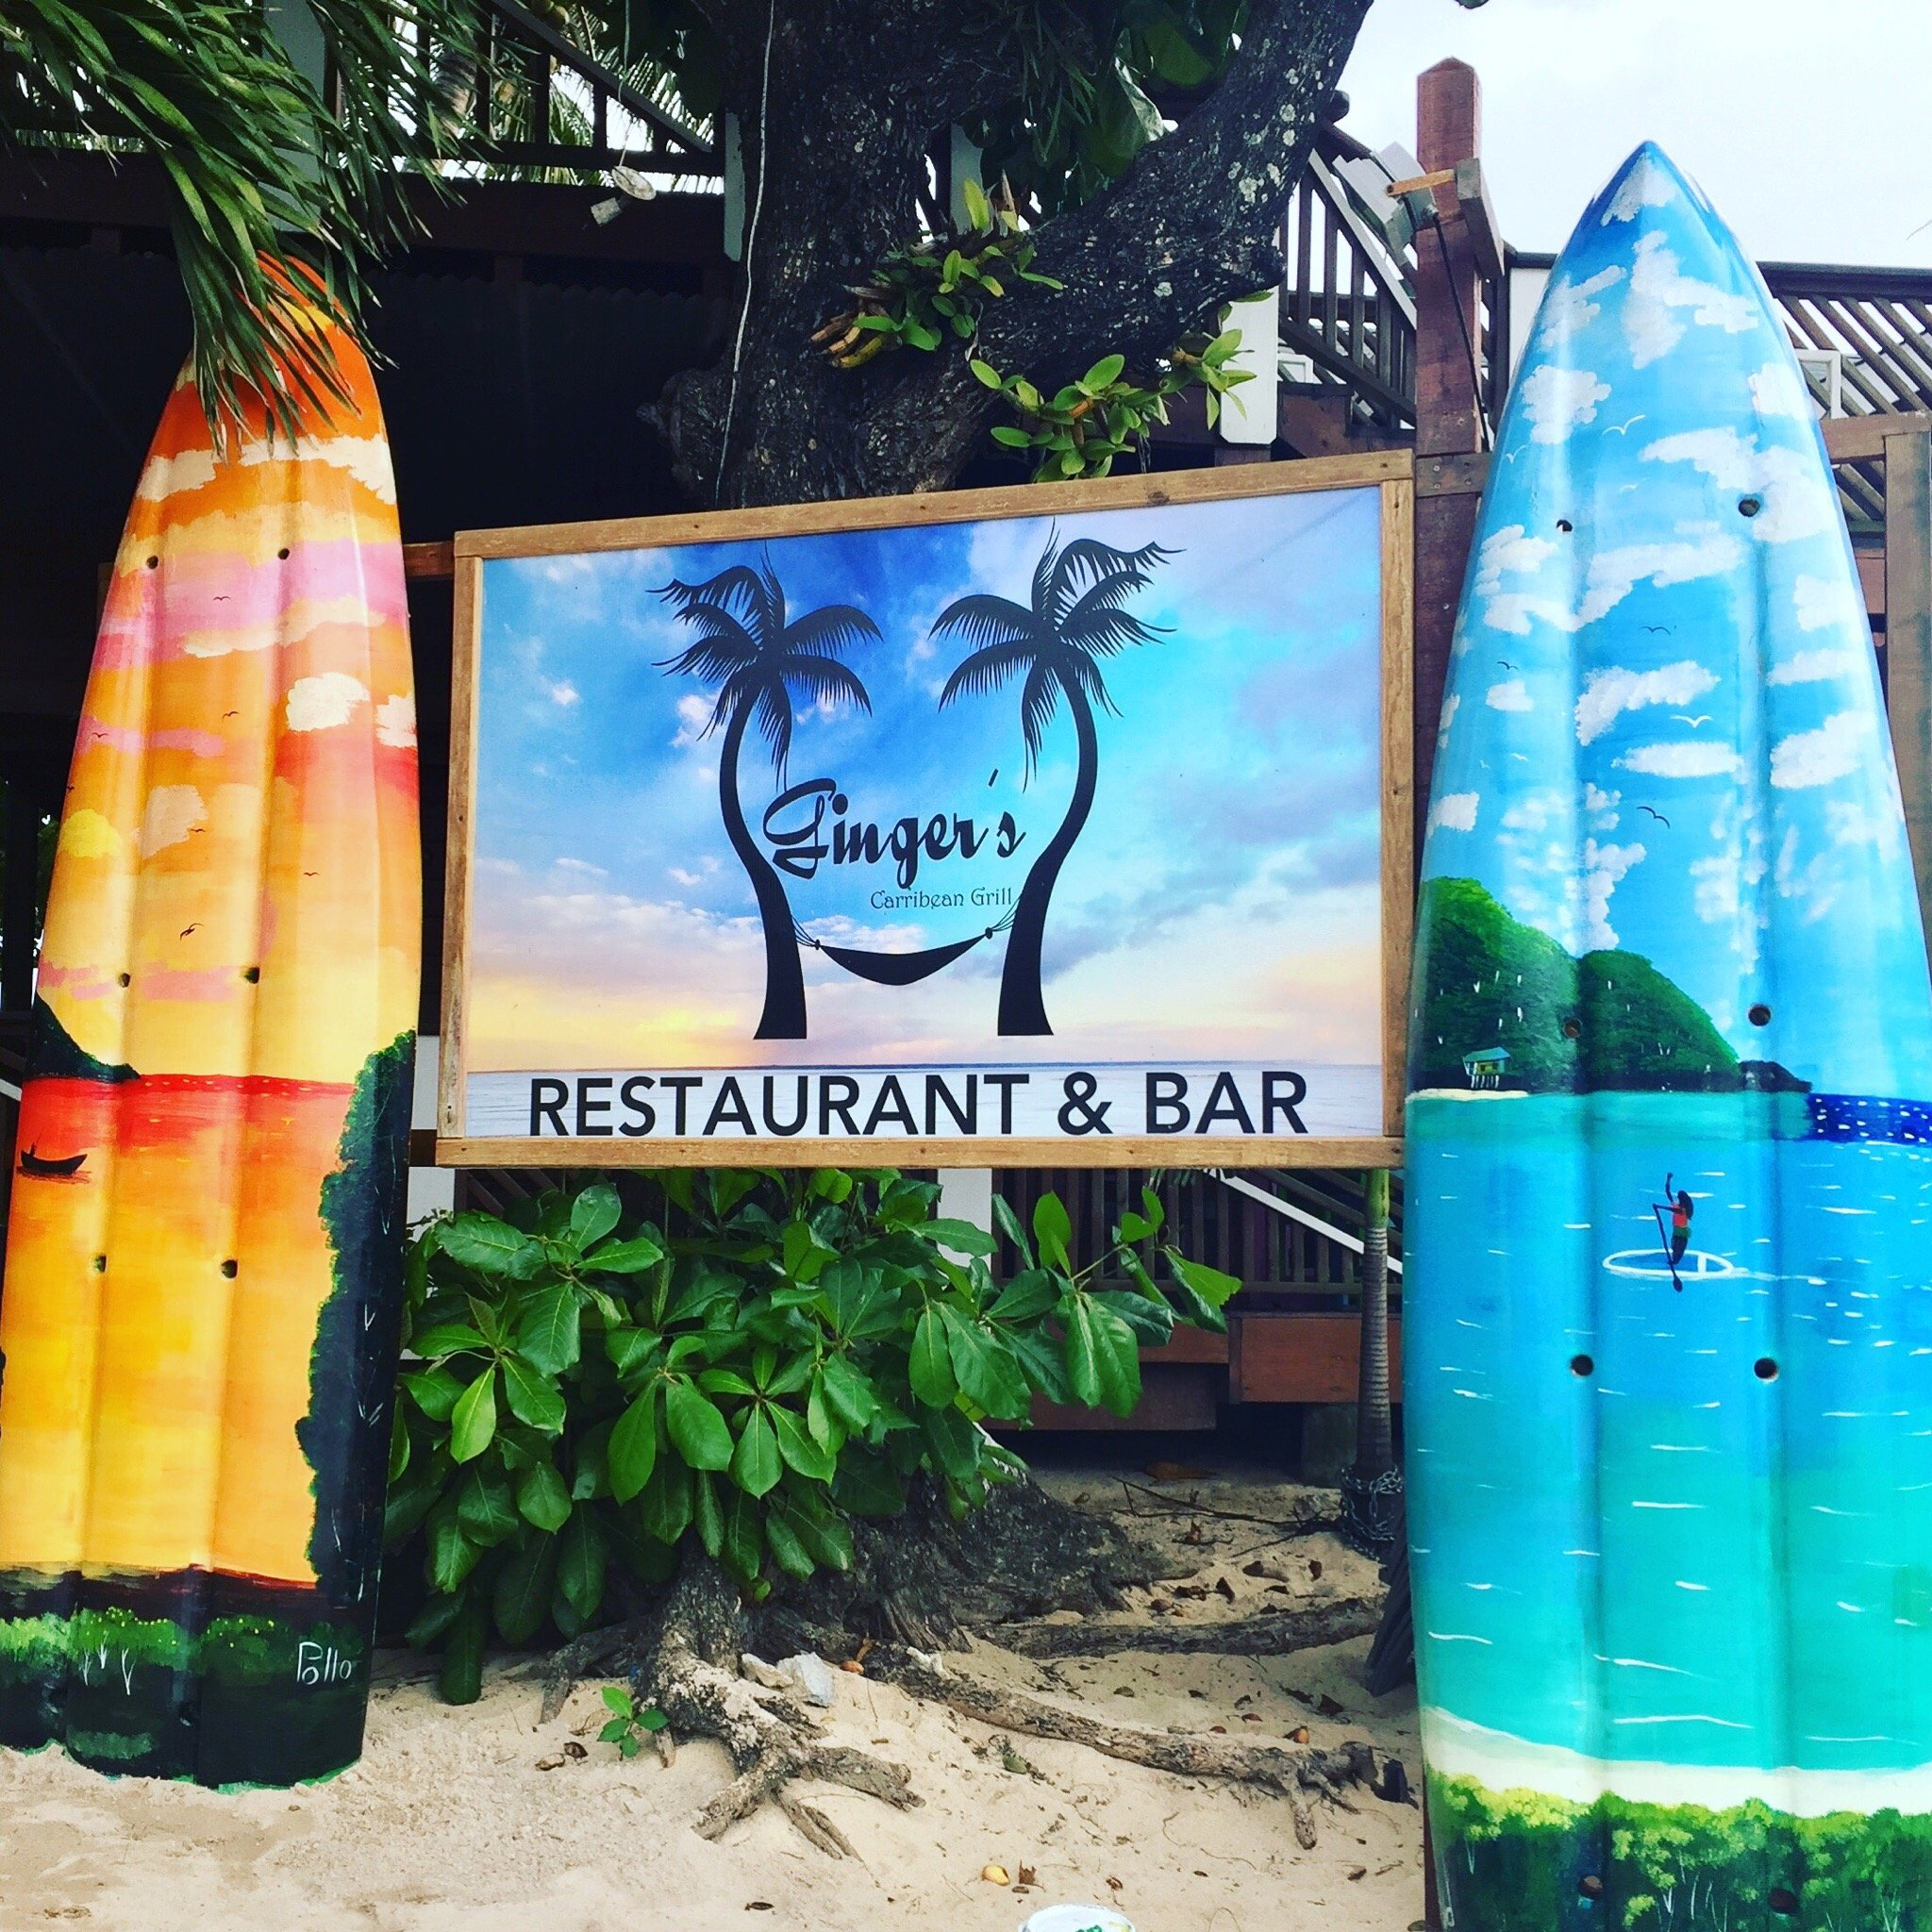 Ginger's Caribbean Grill